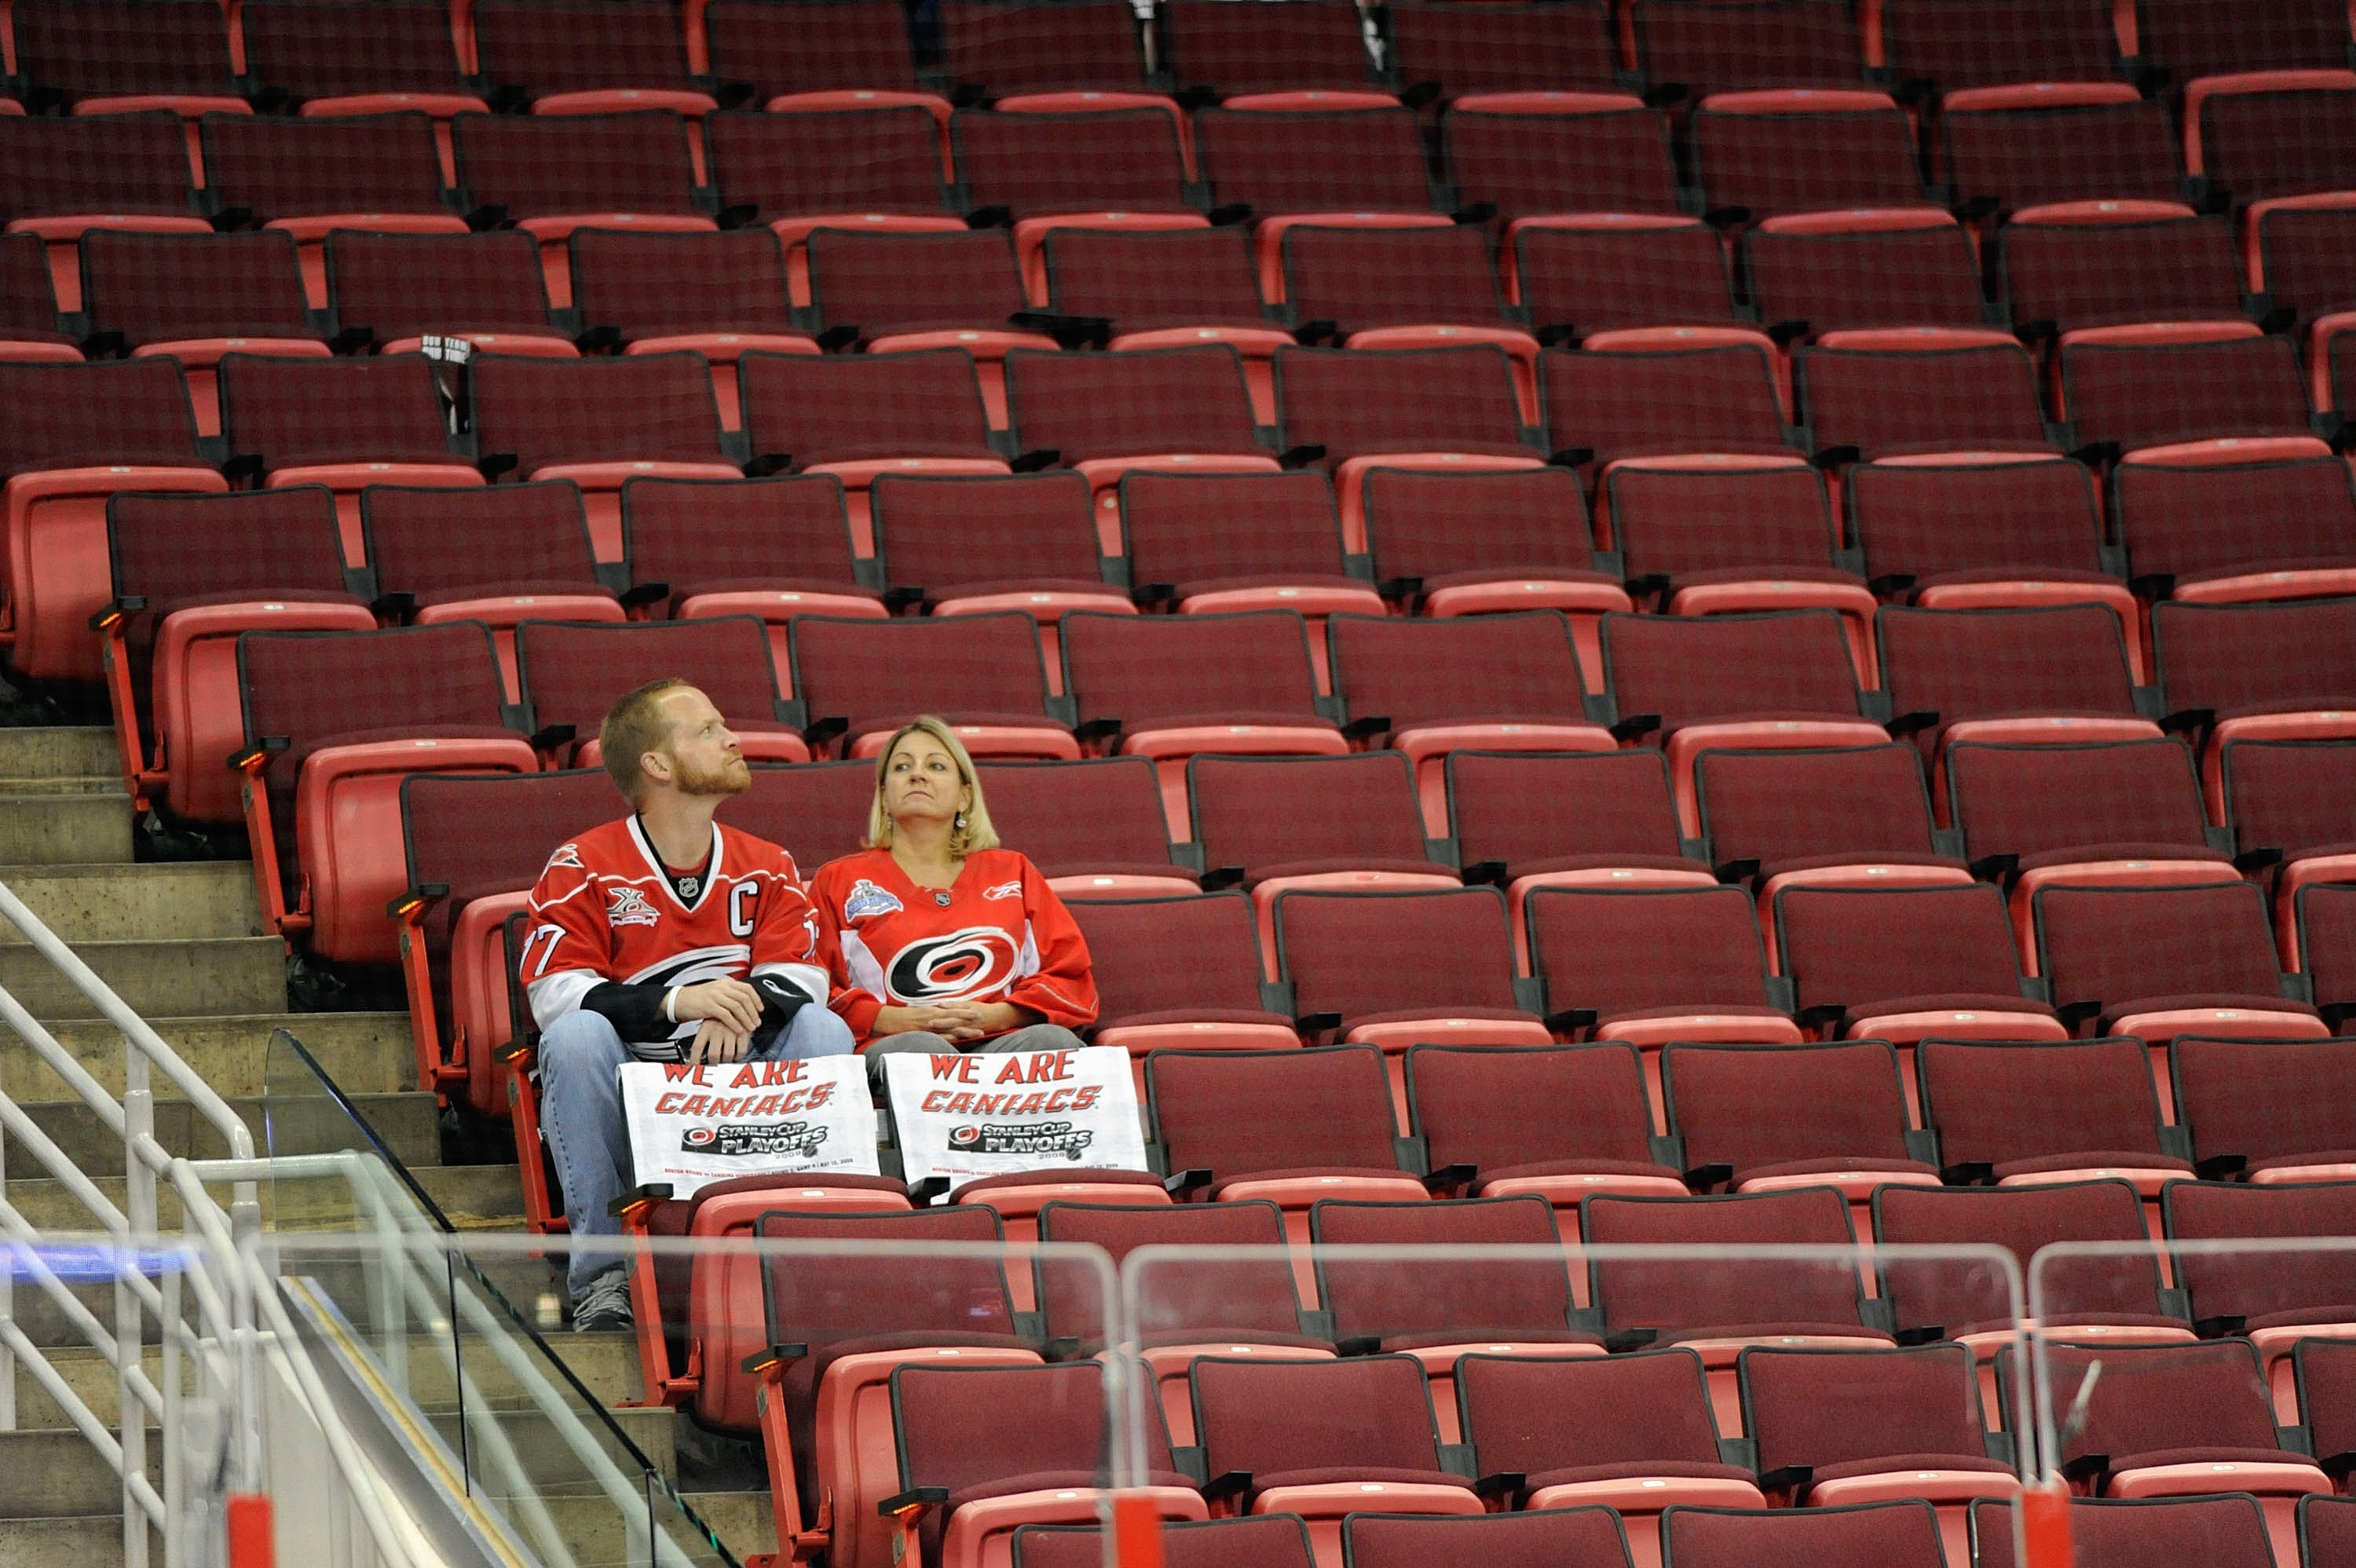 The Carolina Hurricanes are almost always last in NHL attendance, and that's (at least partly) by design